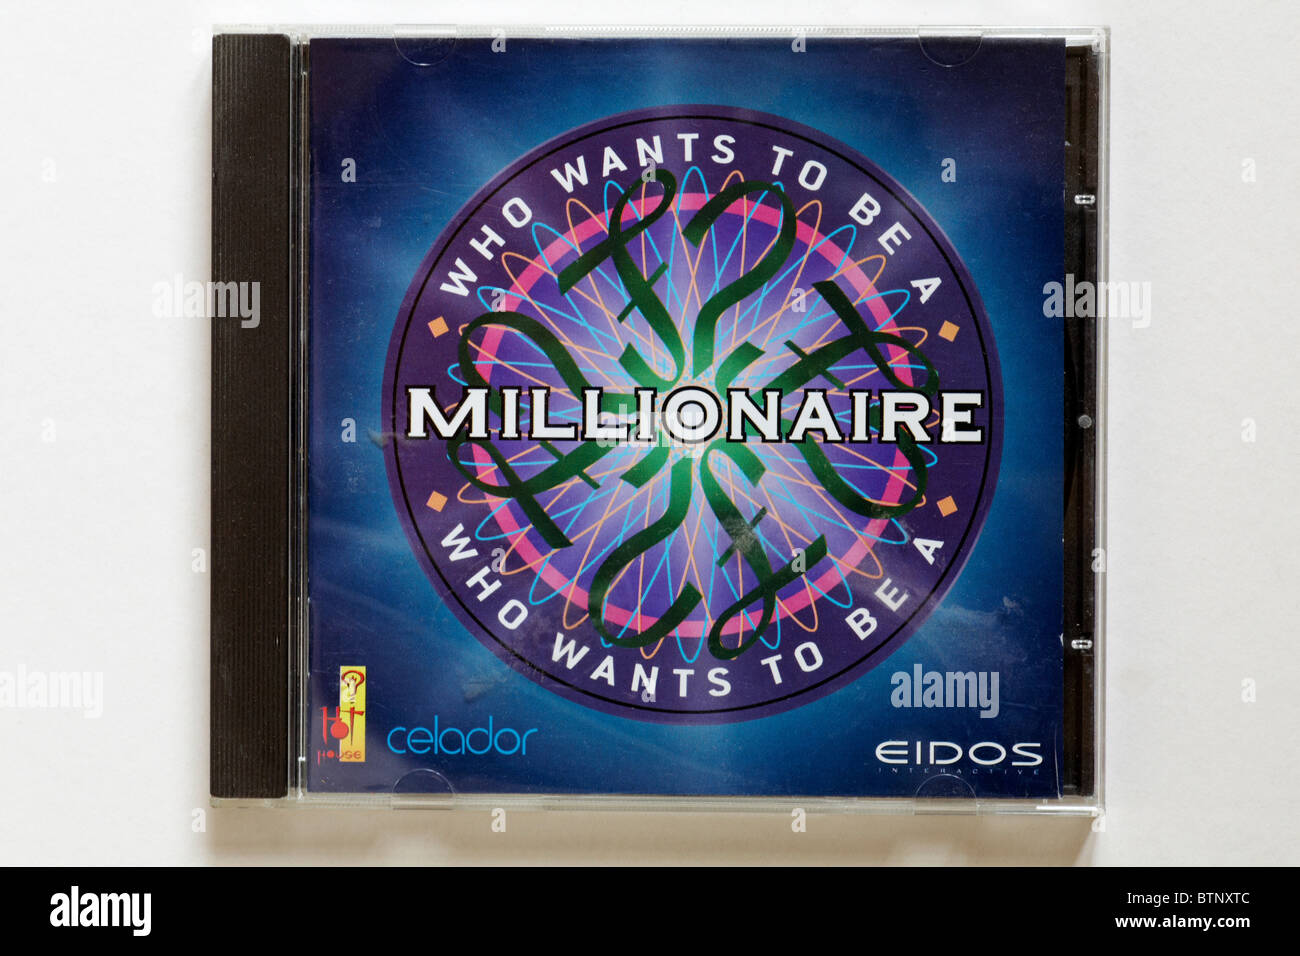 who wants to be a millionaire dvd stock photo, royalty free image, Powerpoint templates